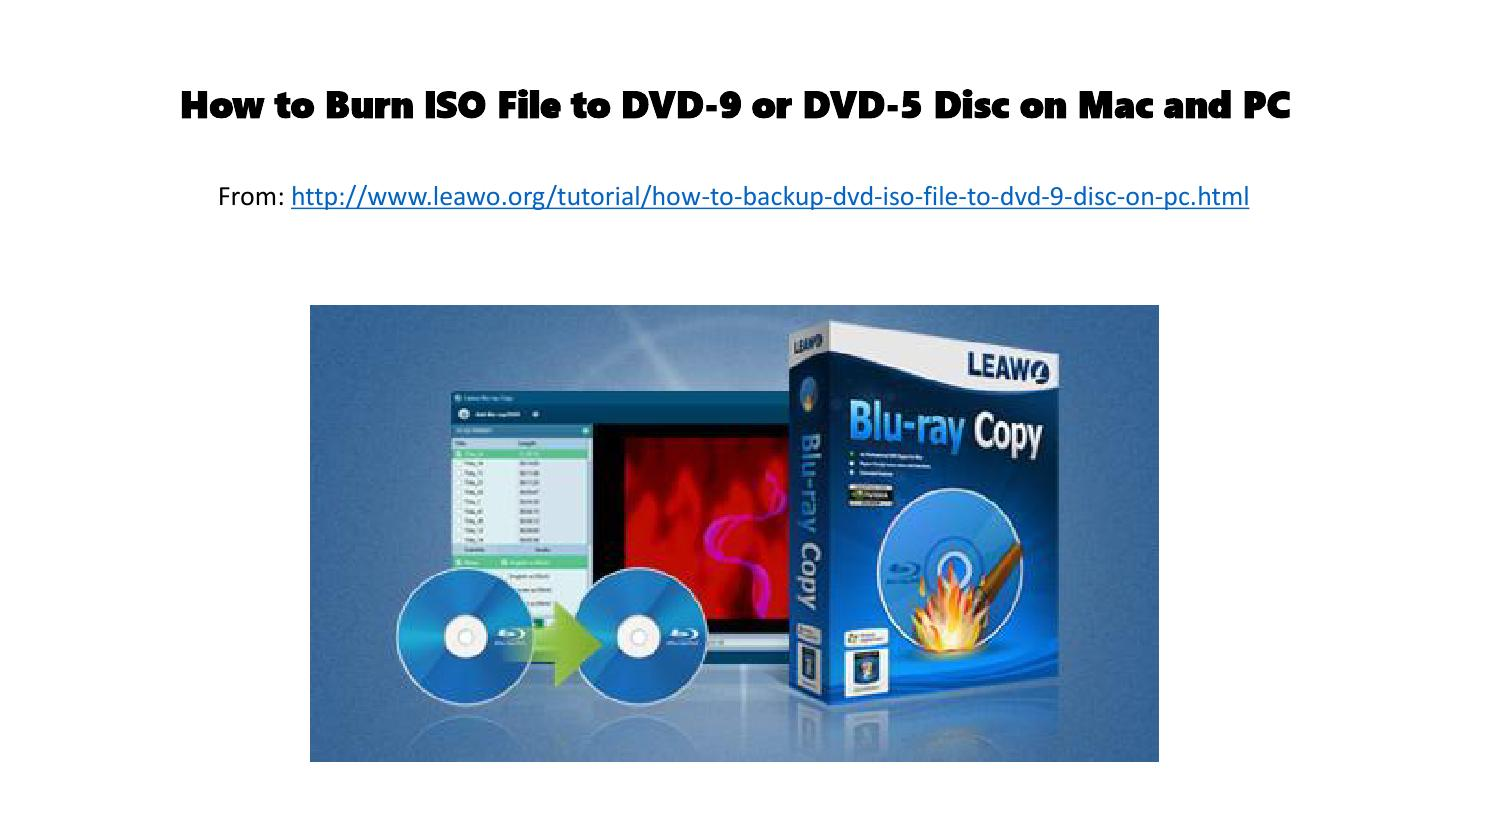 How to burn iso file to dvd 9 or dvd 5 disc on mac and pc by